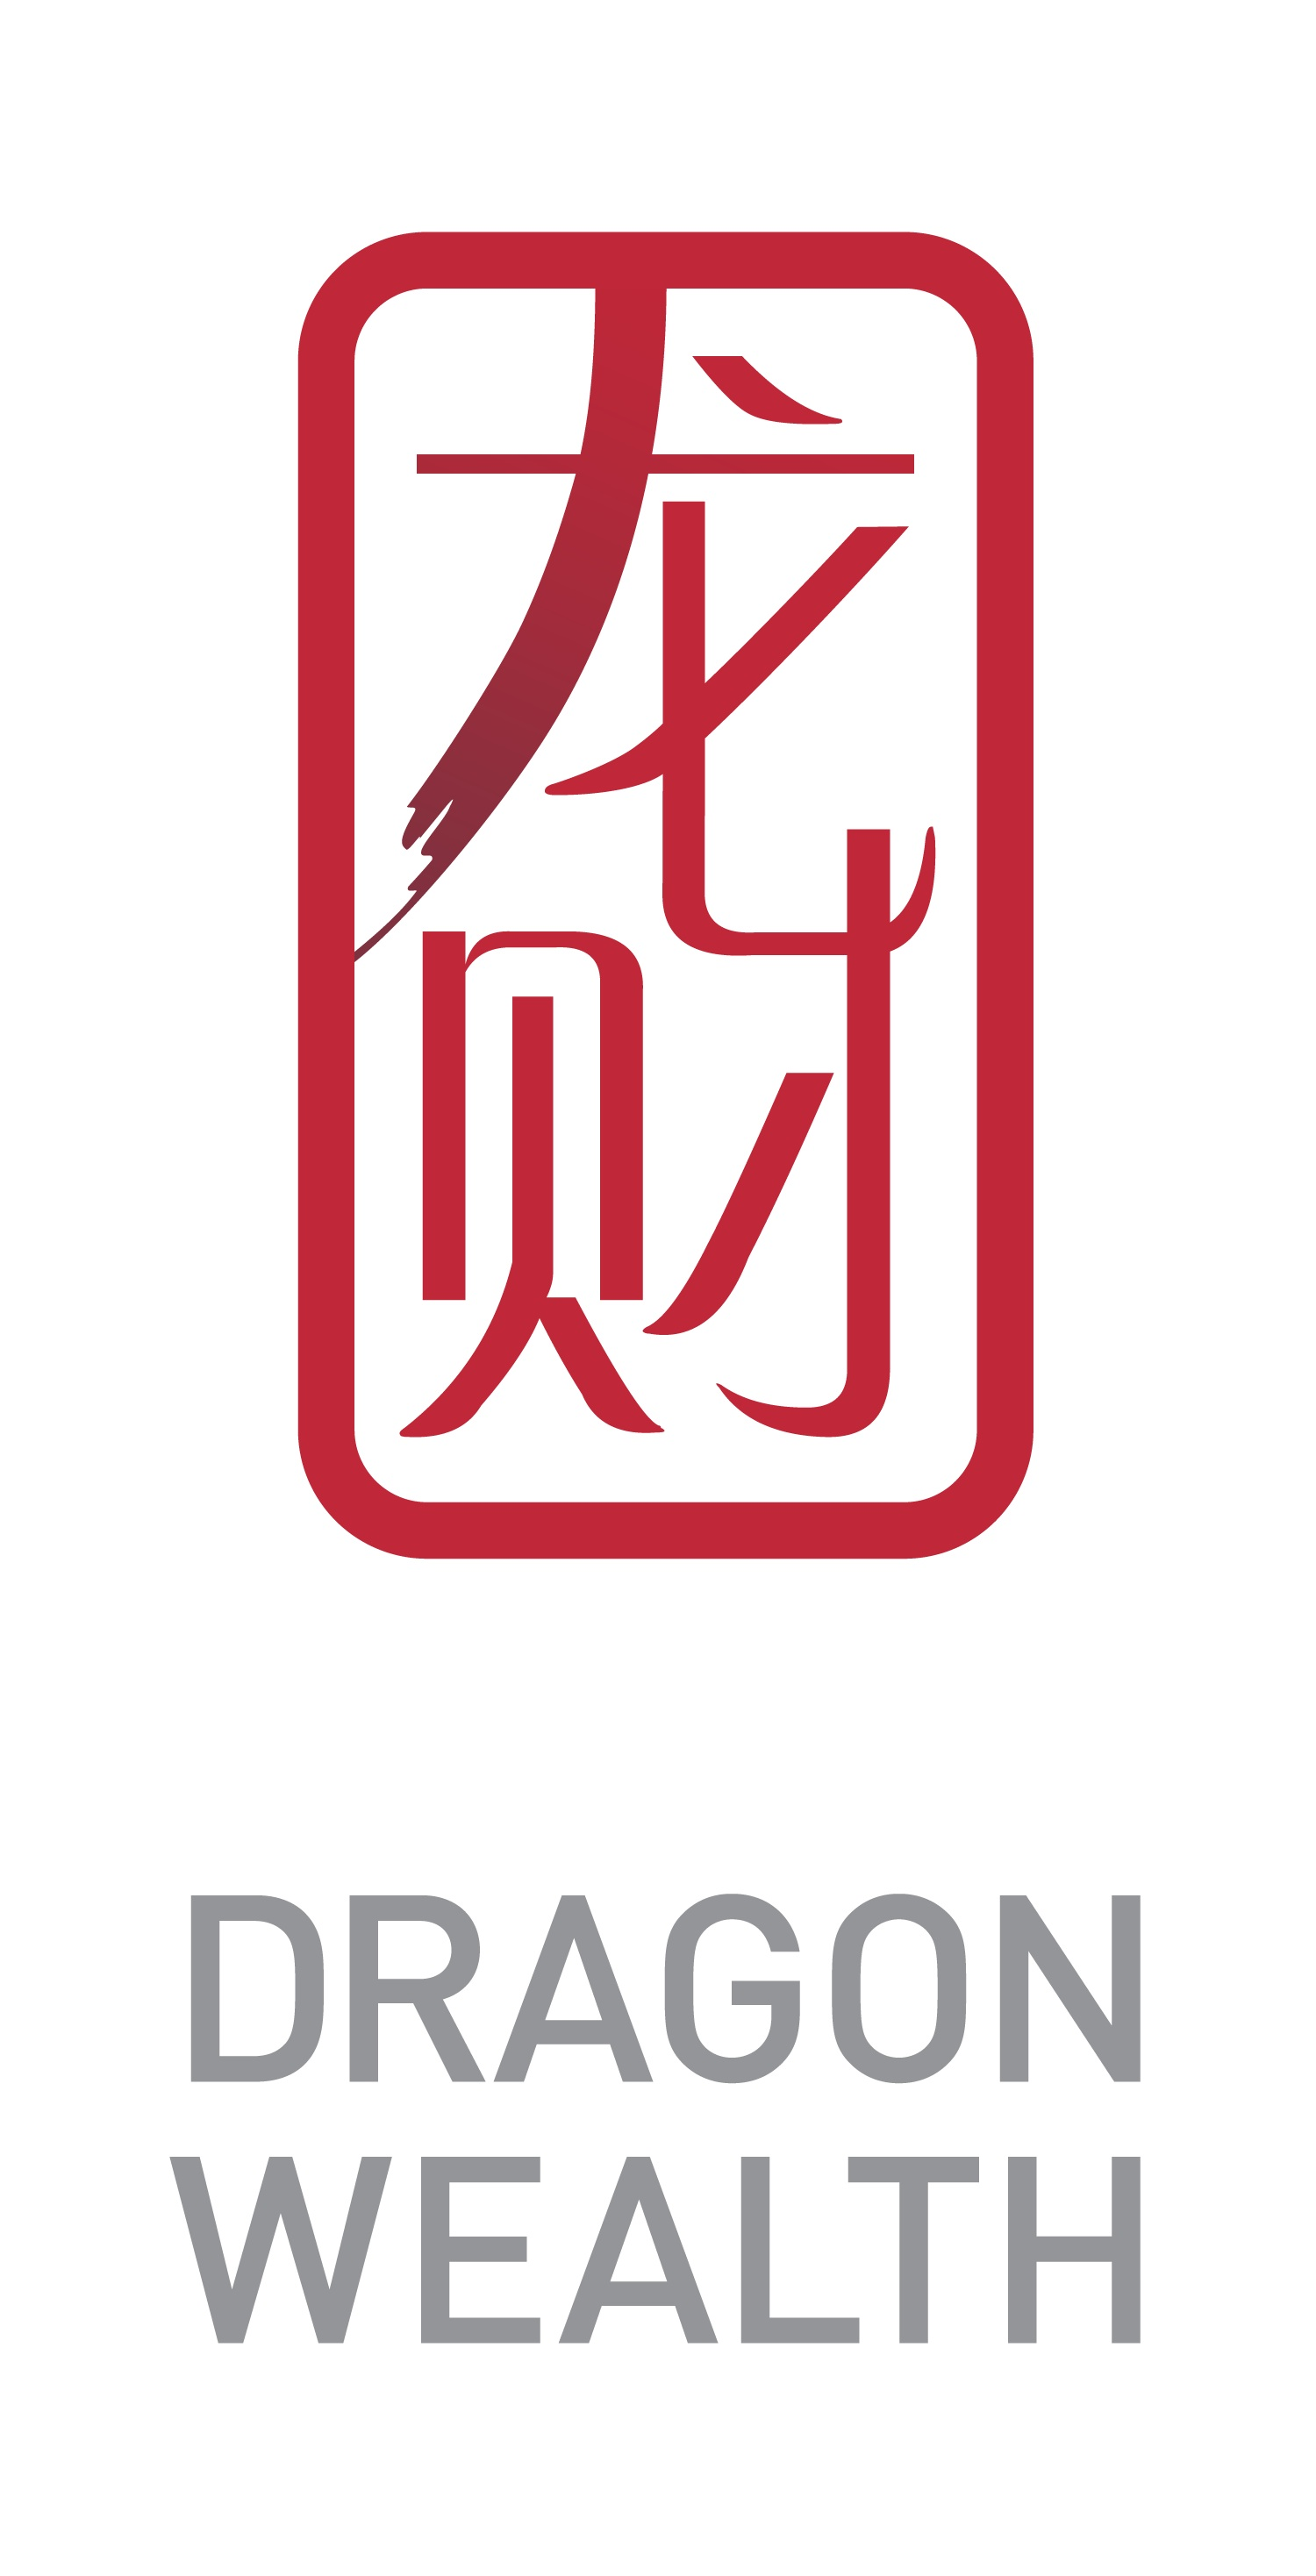 Dragon_Wealth_logo.jpg